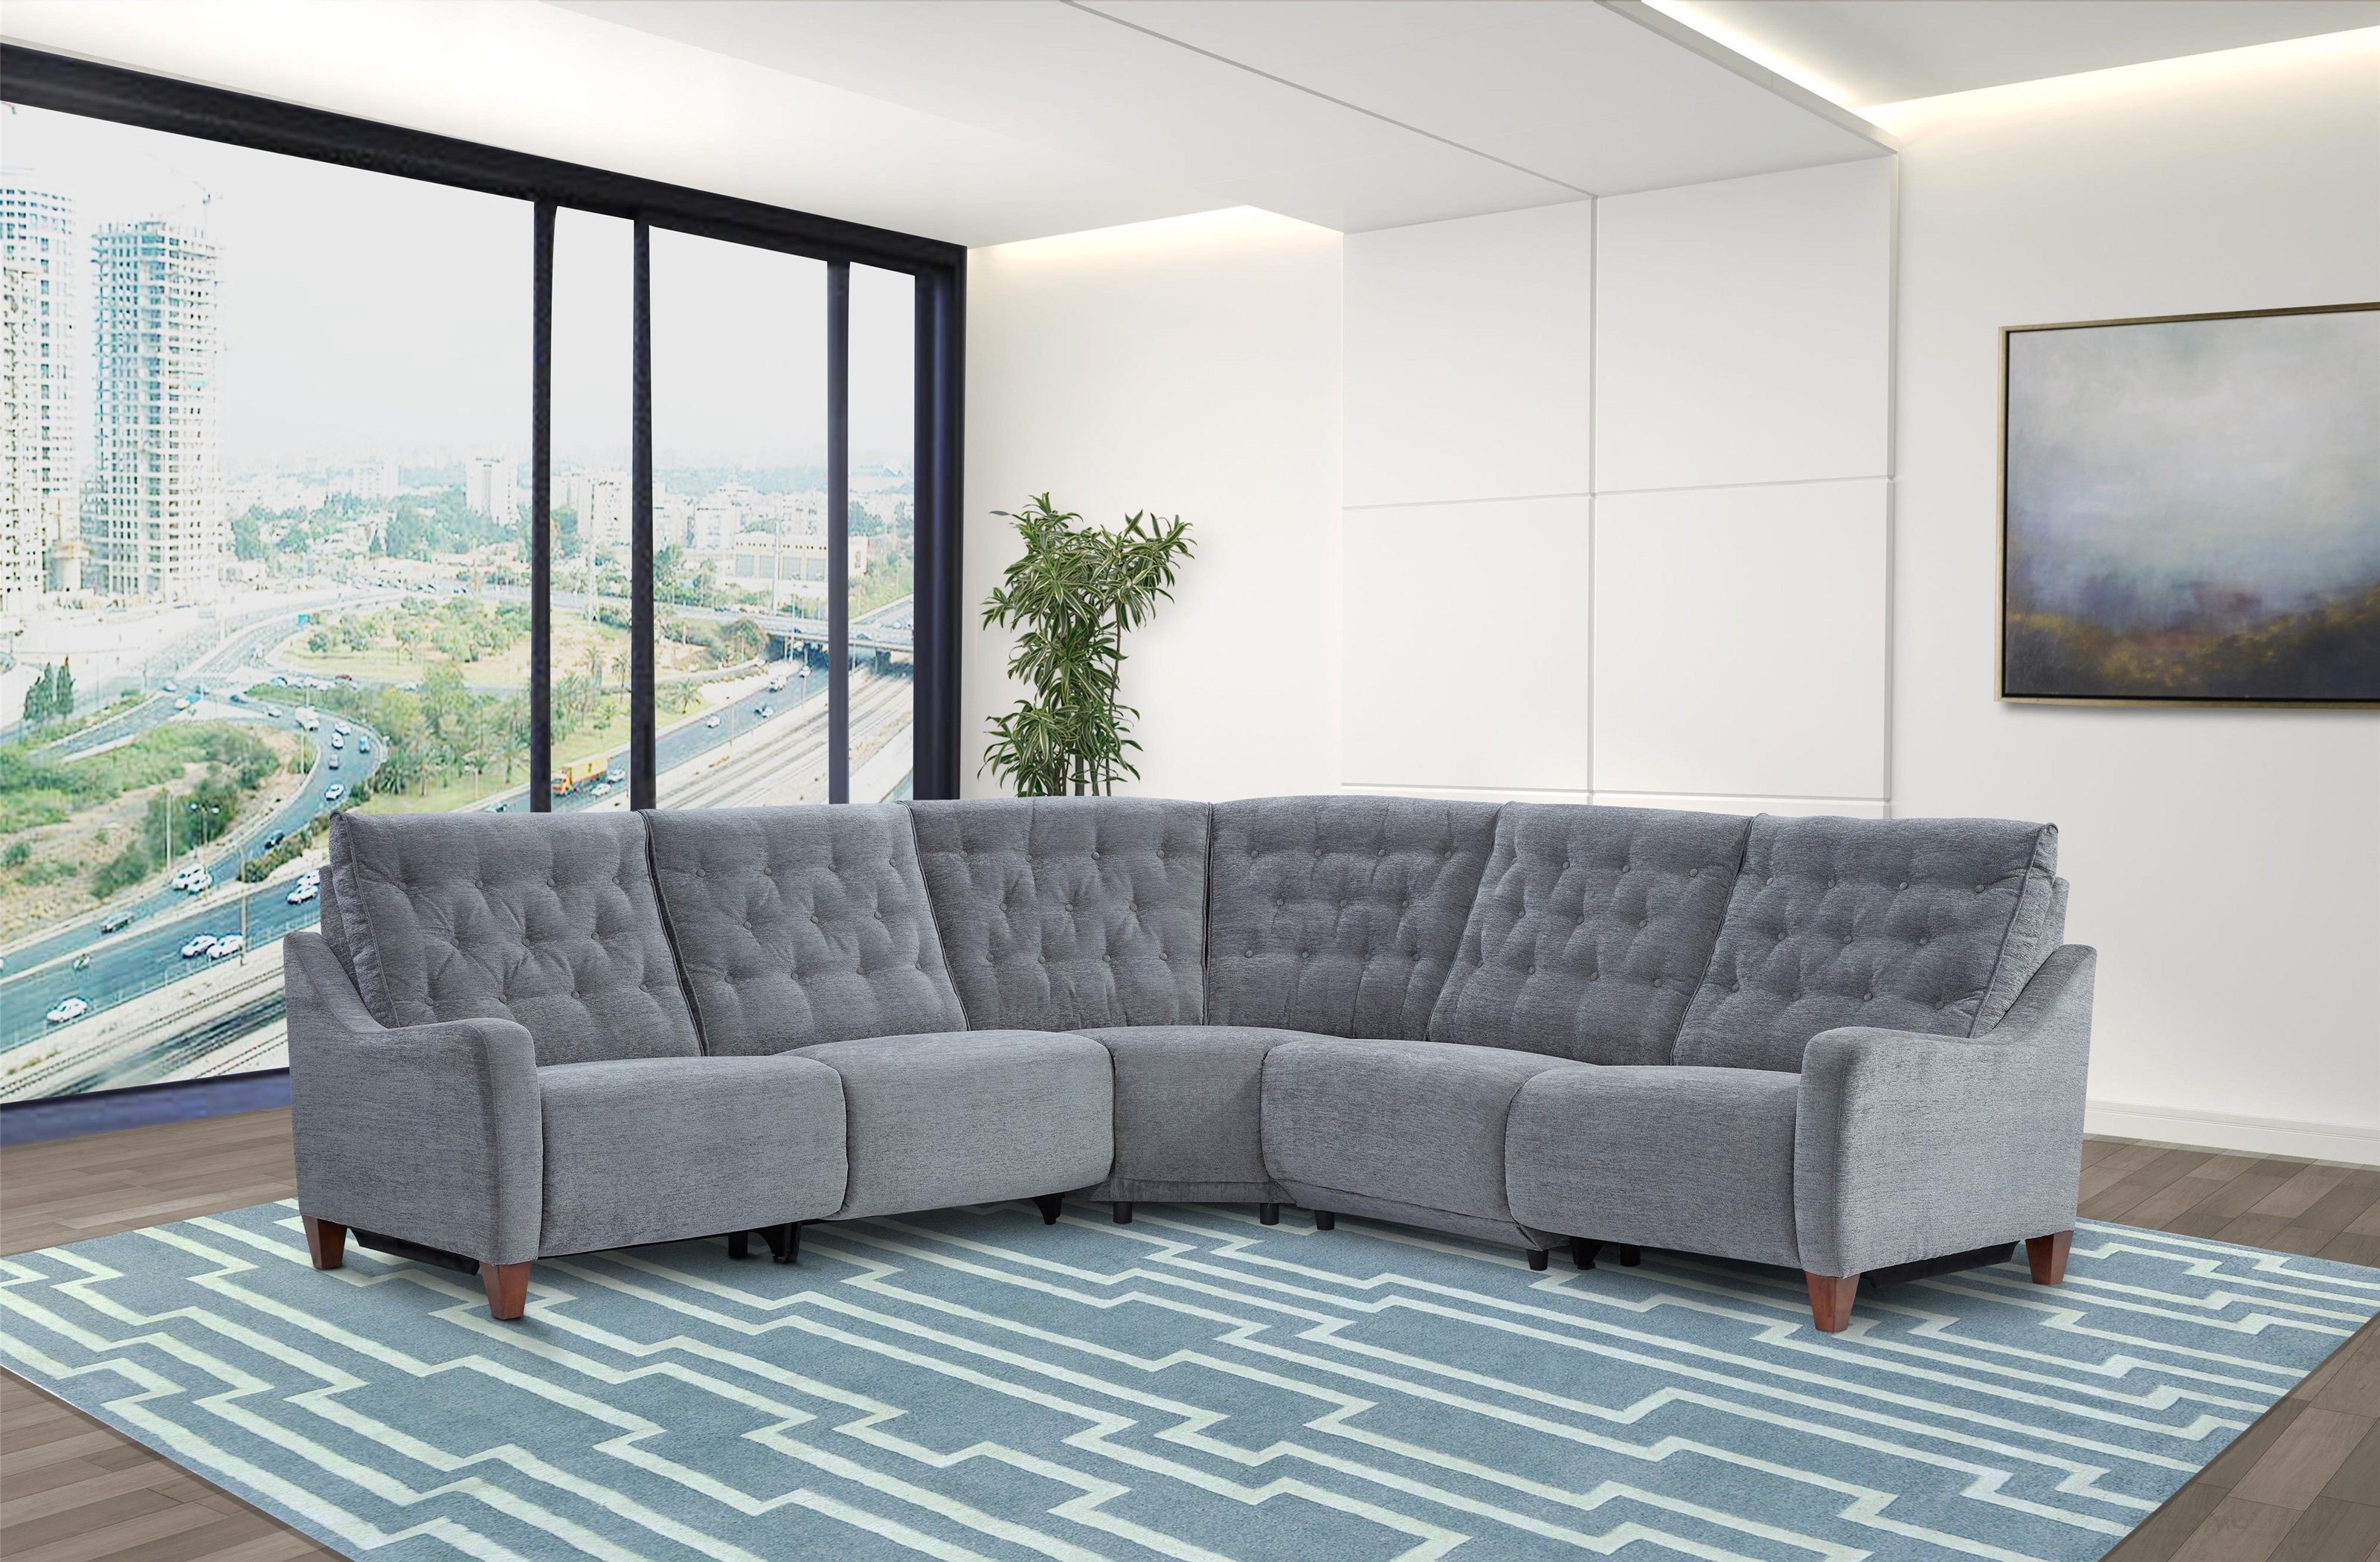 Chelsea 5-Piece Power Reclining Sofa Sectional by Parker House at Beck's Furniture